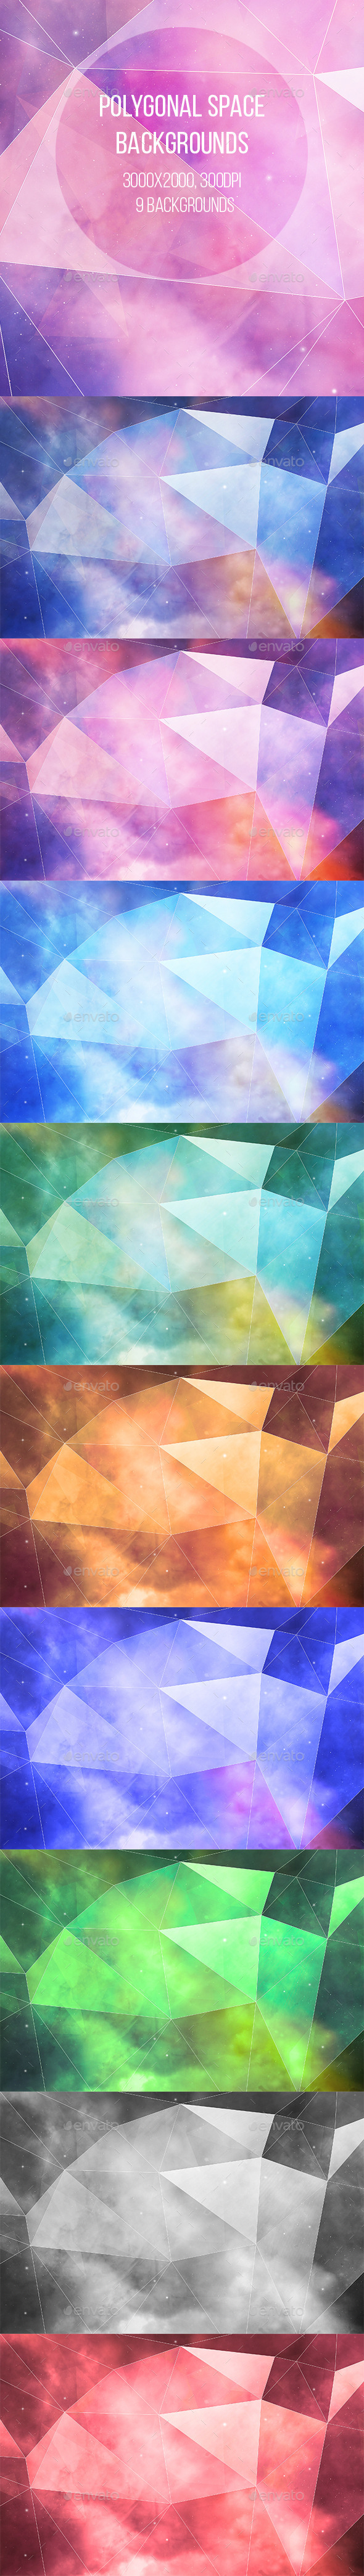 Polygonal Space Backgrounds